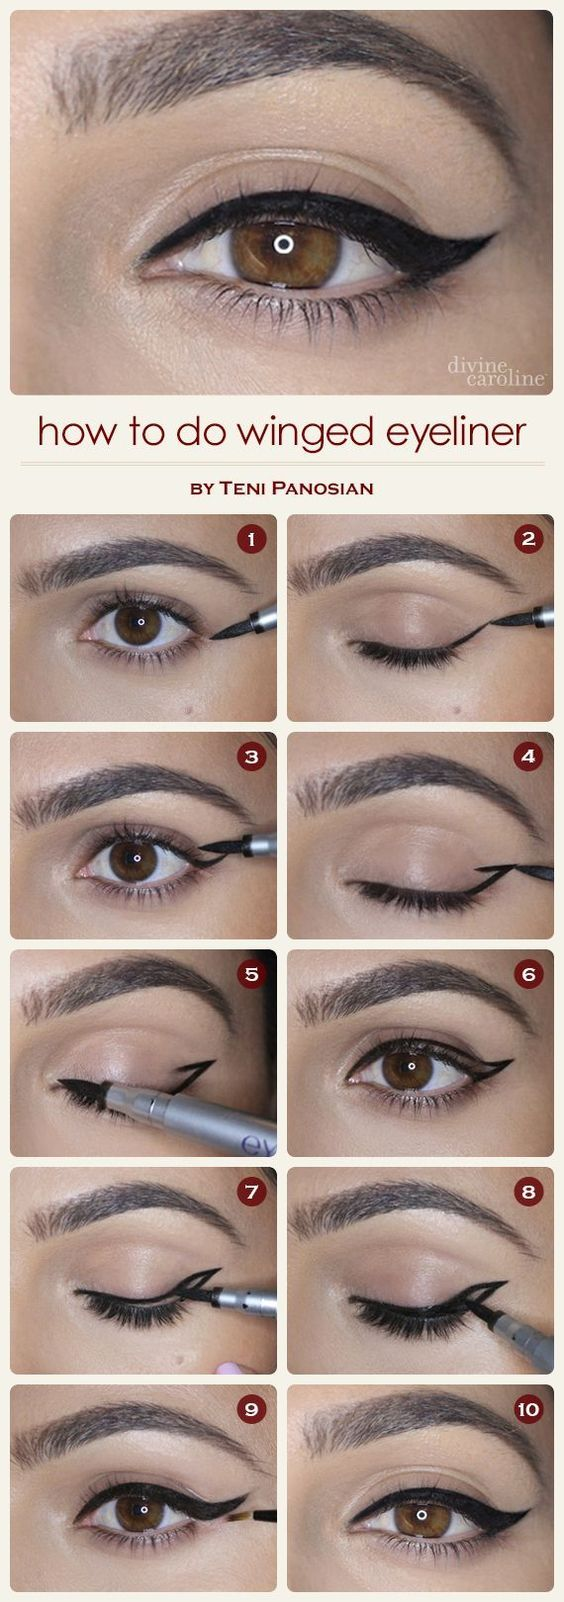 How to Do Winged Eyeliner | Easy Step By Step Tutorial on How to Achieve Perfect Cat-Eye Liner | For More Great Makeup Tips & Advice Visit MakeupTutorials.com.: